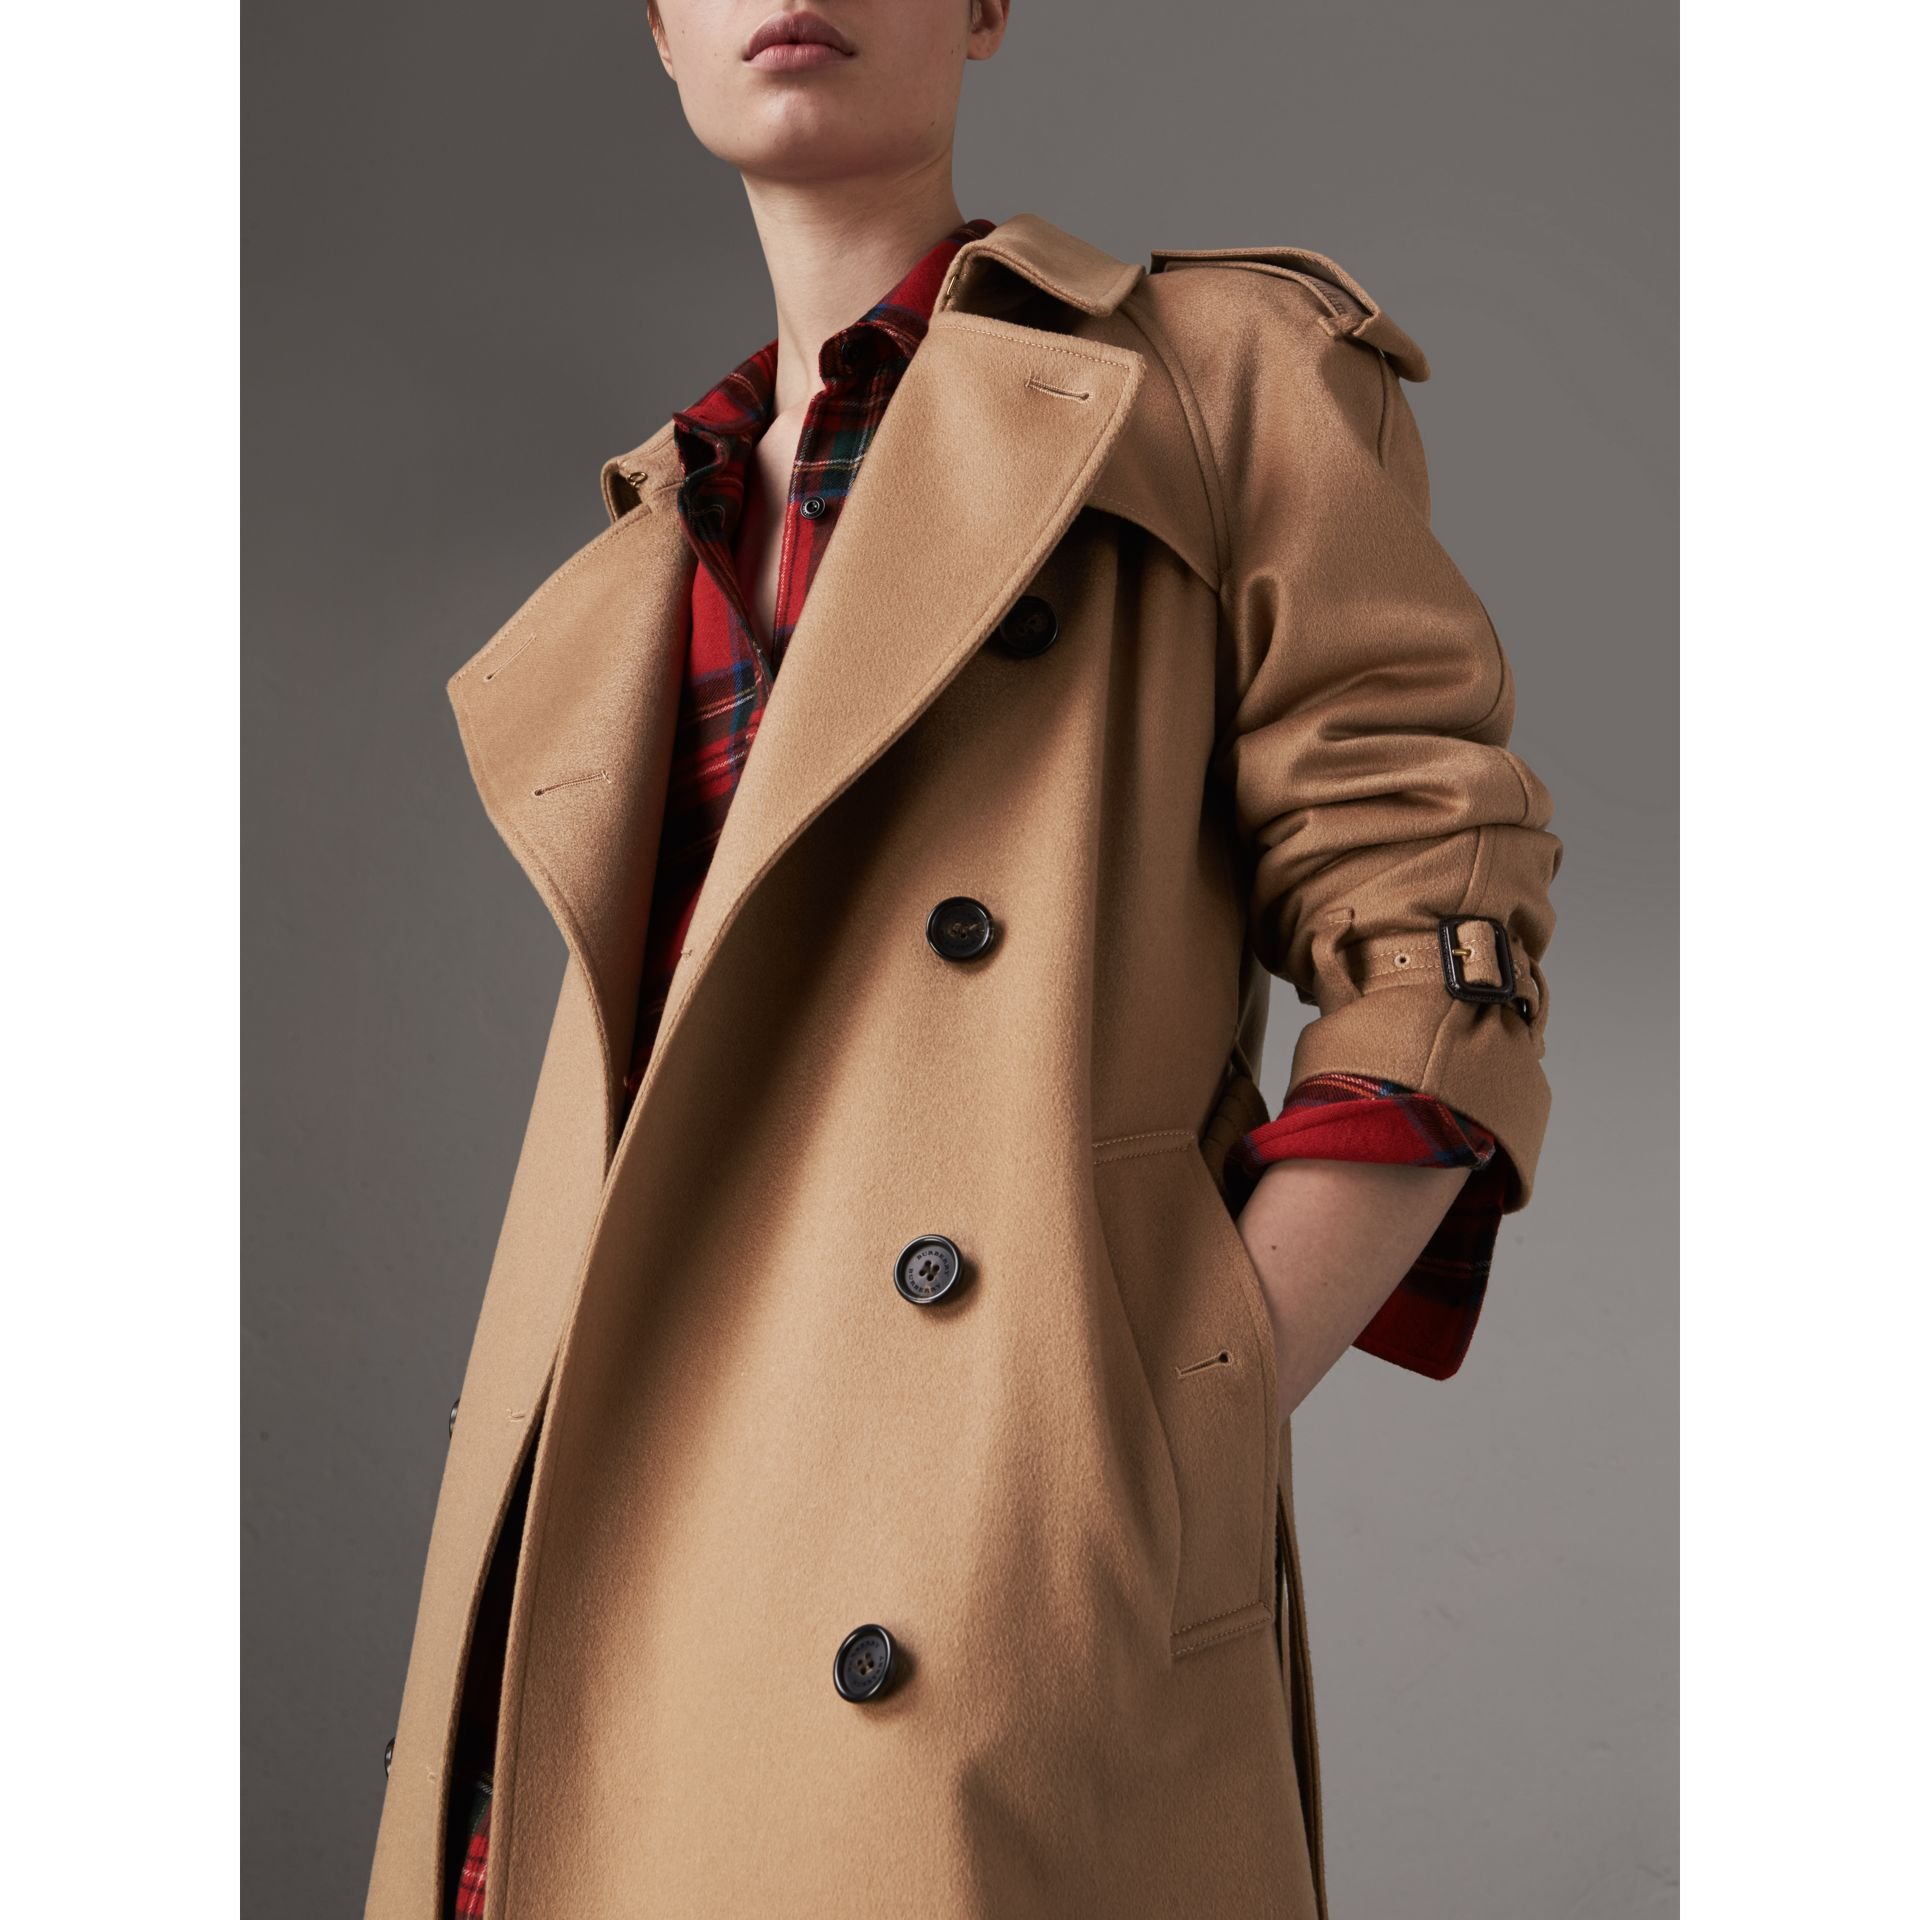 Cashmere Trench Coat in Camel - Women | Burberry - gallery image 5